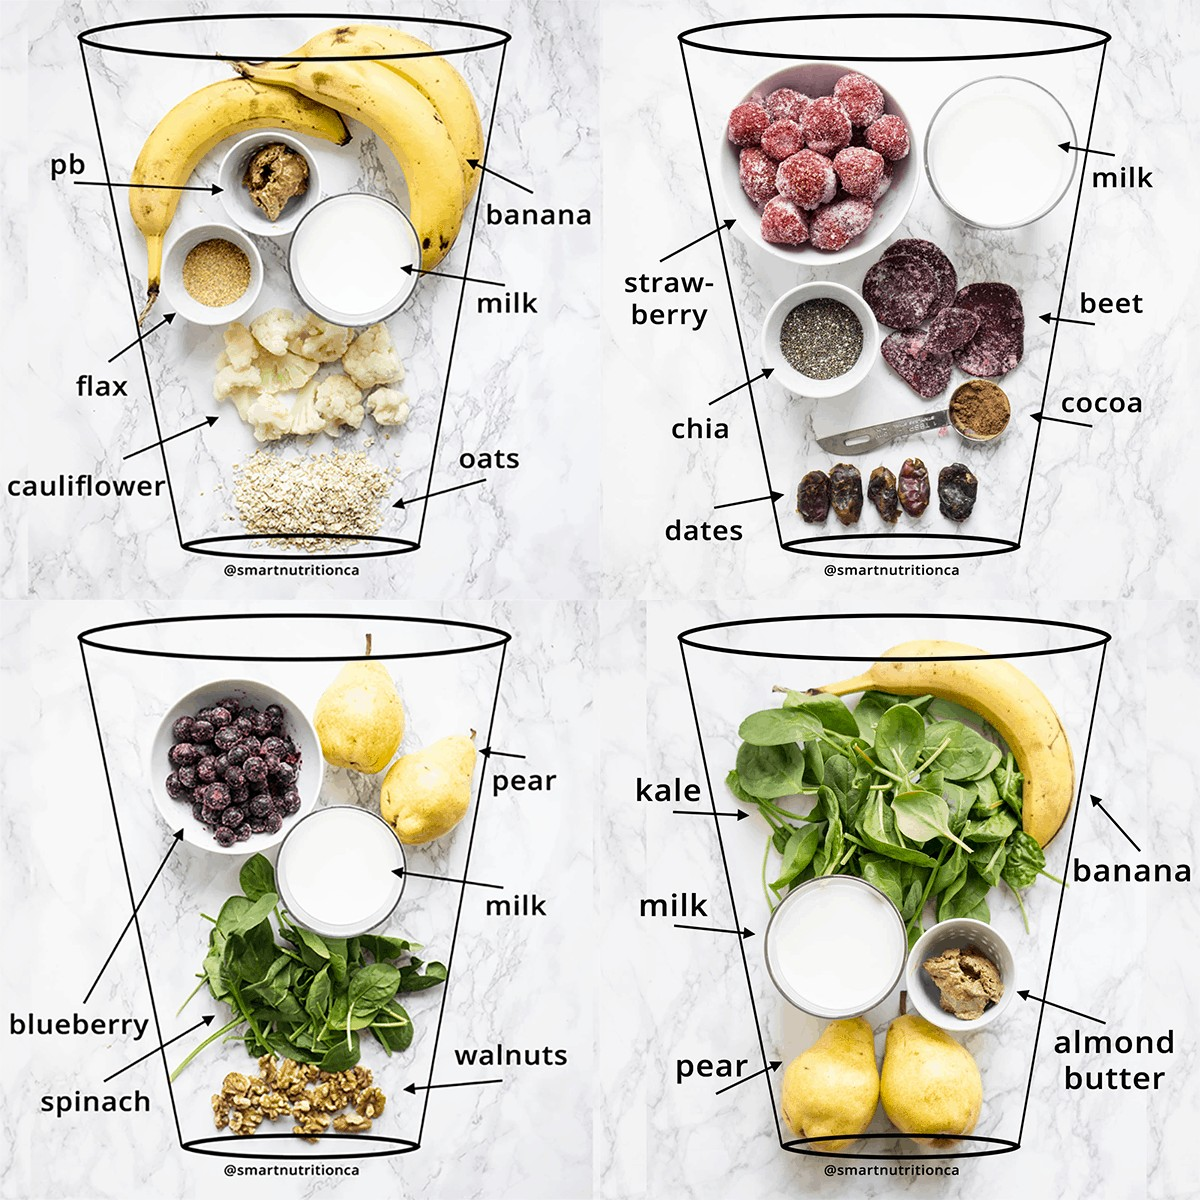 Vegetable smoothies freezer packs. Free guide with grocery list and instructions for making 20 freezer smoothie packs! #glutenfree #vegan #smoothie #greensmoothie #smoothiepacks #makeahead #mealprep #breakfastmealprep #vegansmoothie #vegansmoothies #glutenfreesmoothie #healthybreakfast